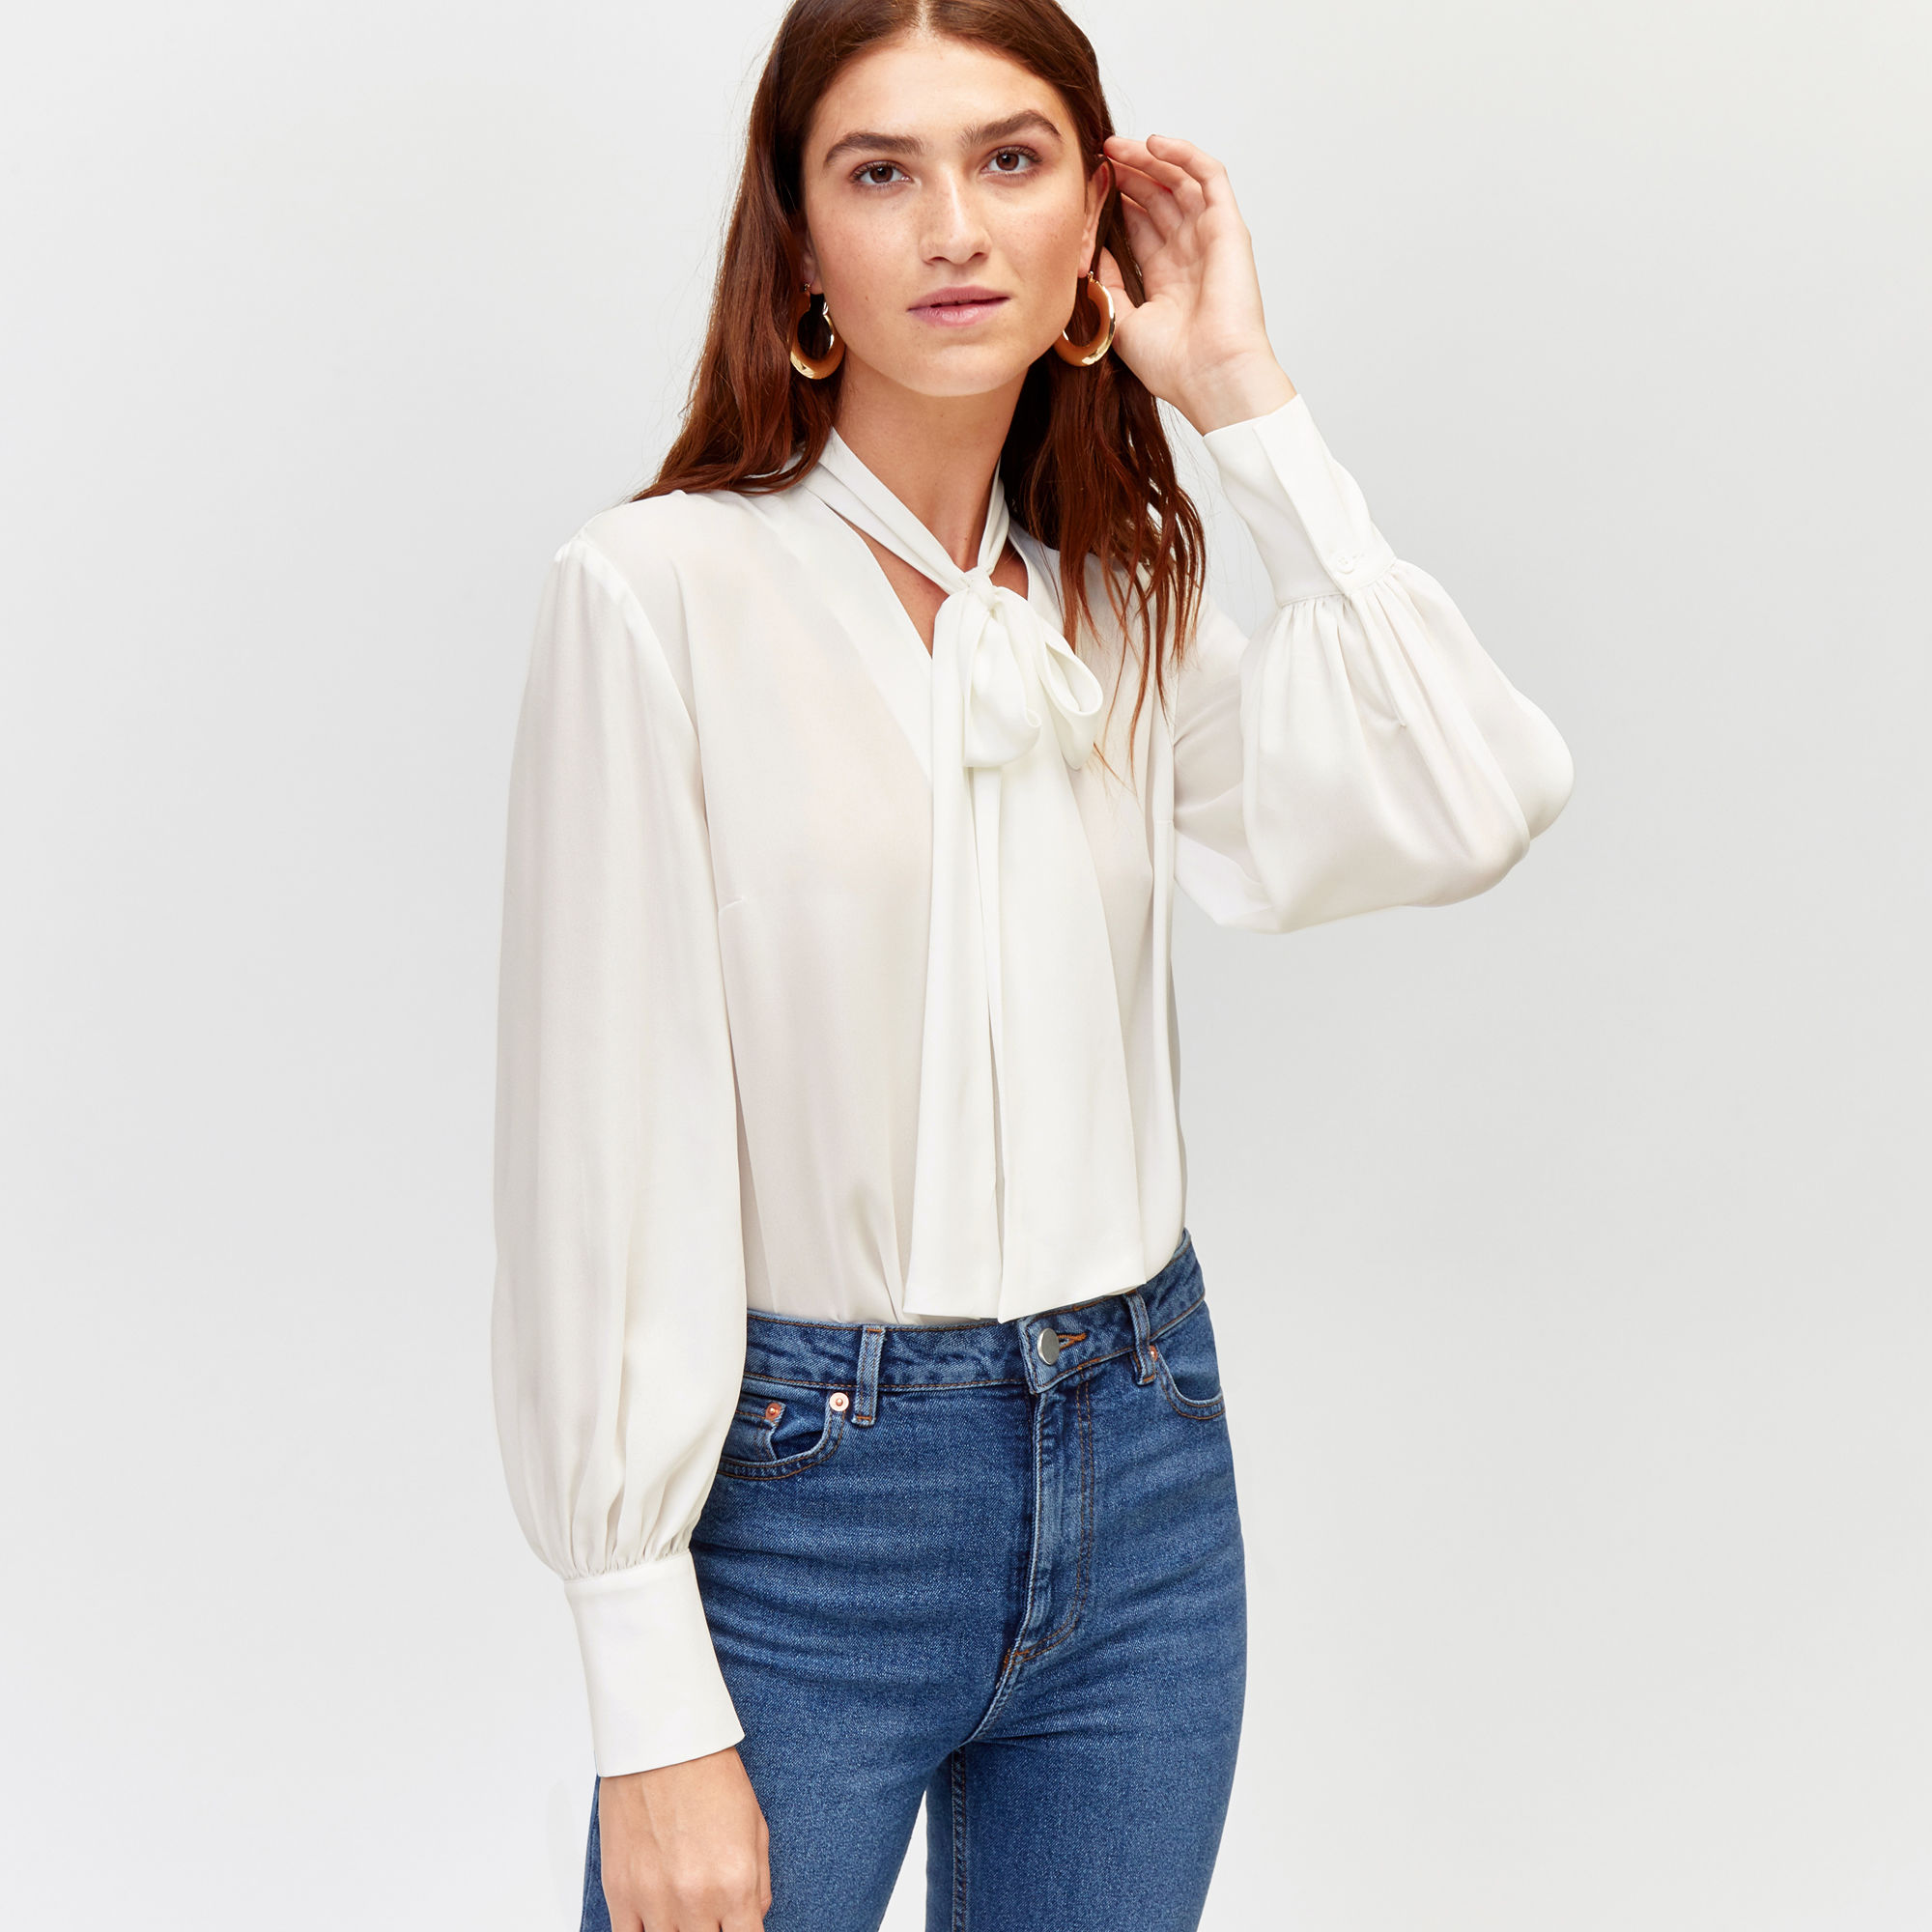 Warehouse, PUSSY-BOW BLOUSE Cream 1